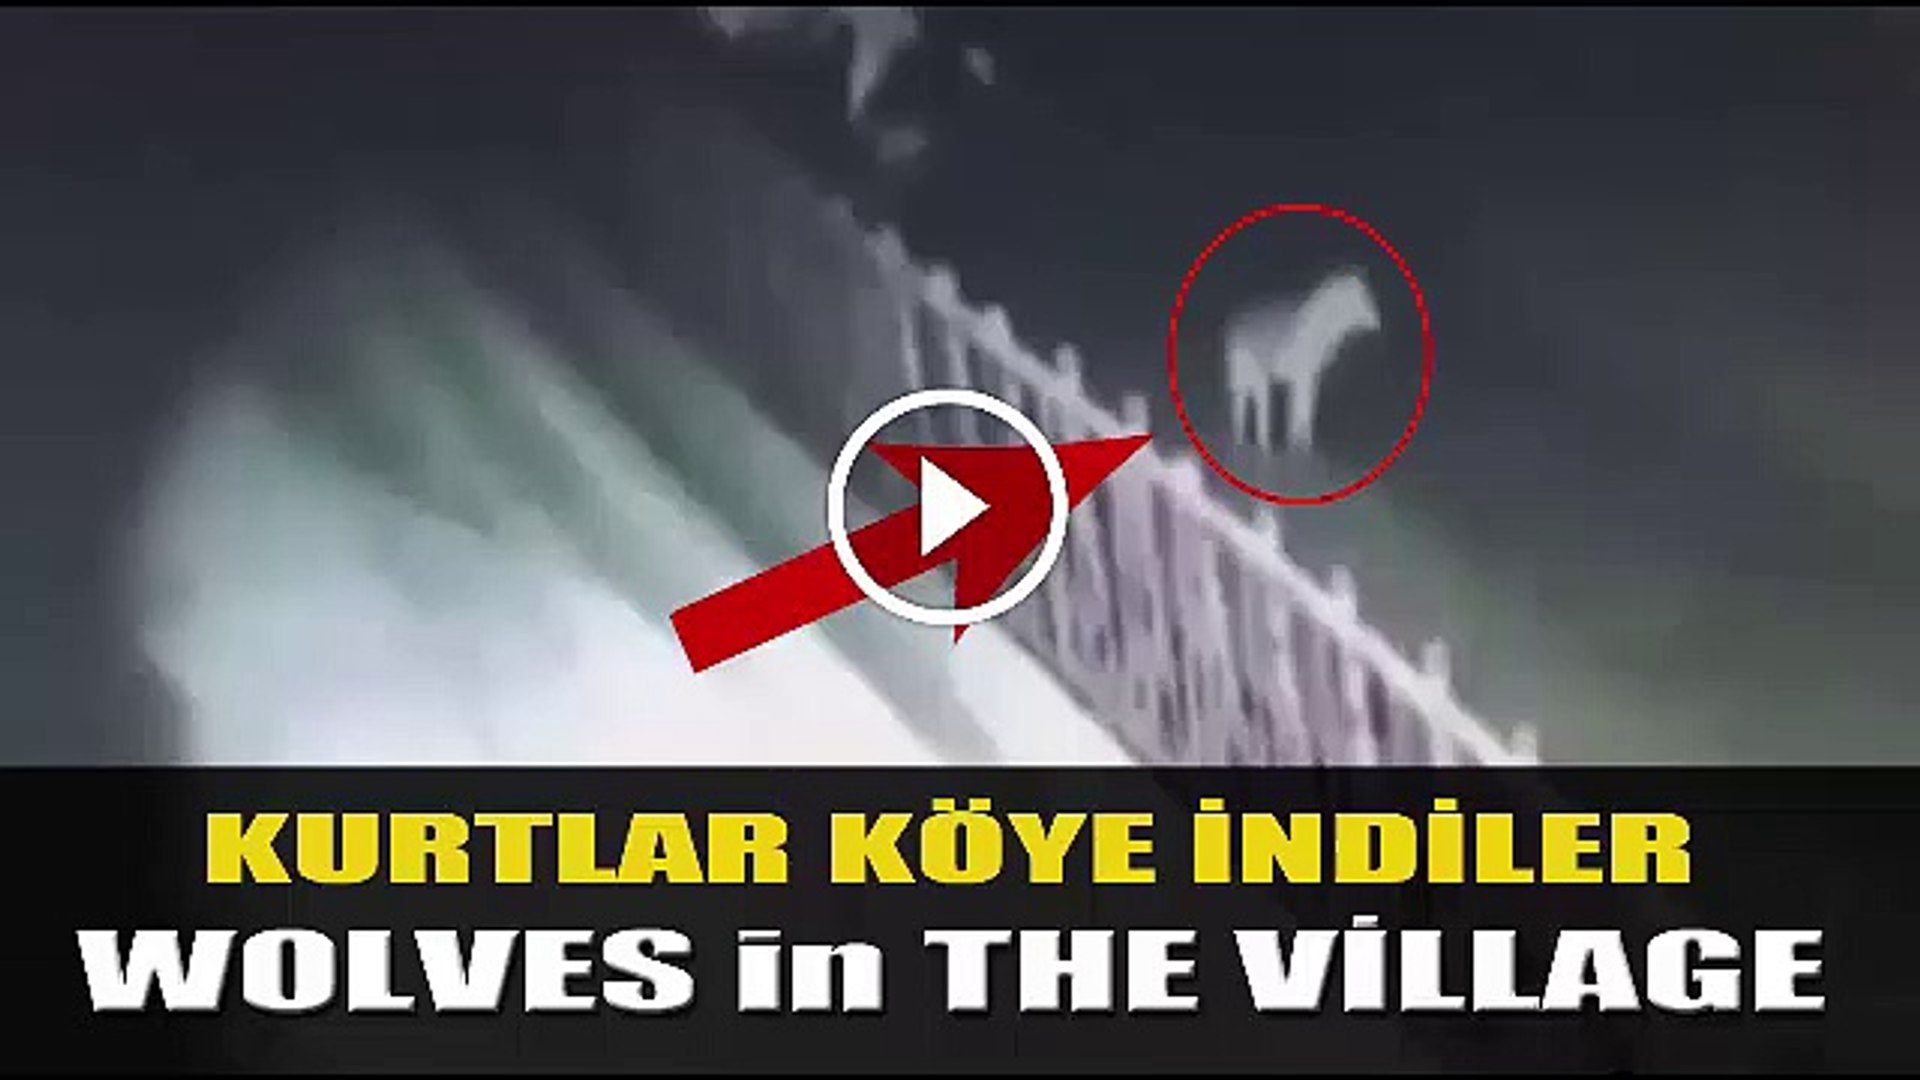 KURTLARIN KOY BASKINI - ViLLAGE RAiD of the WOLVES